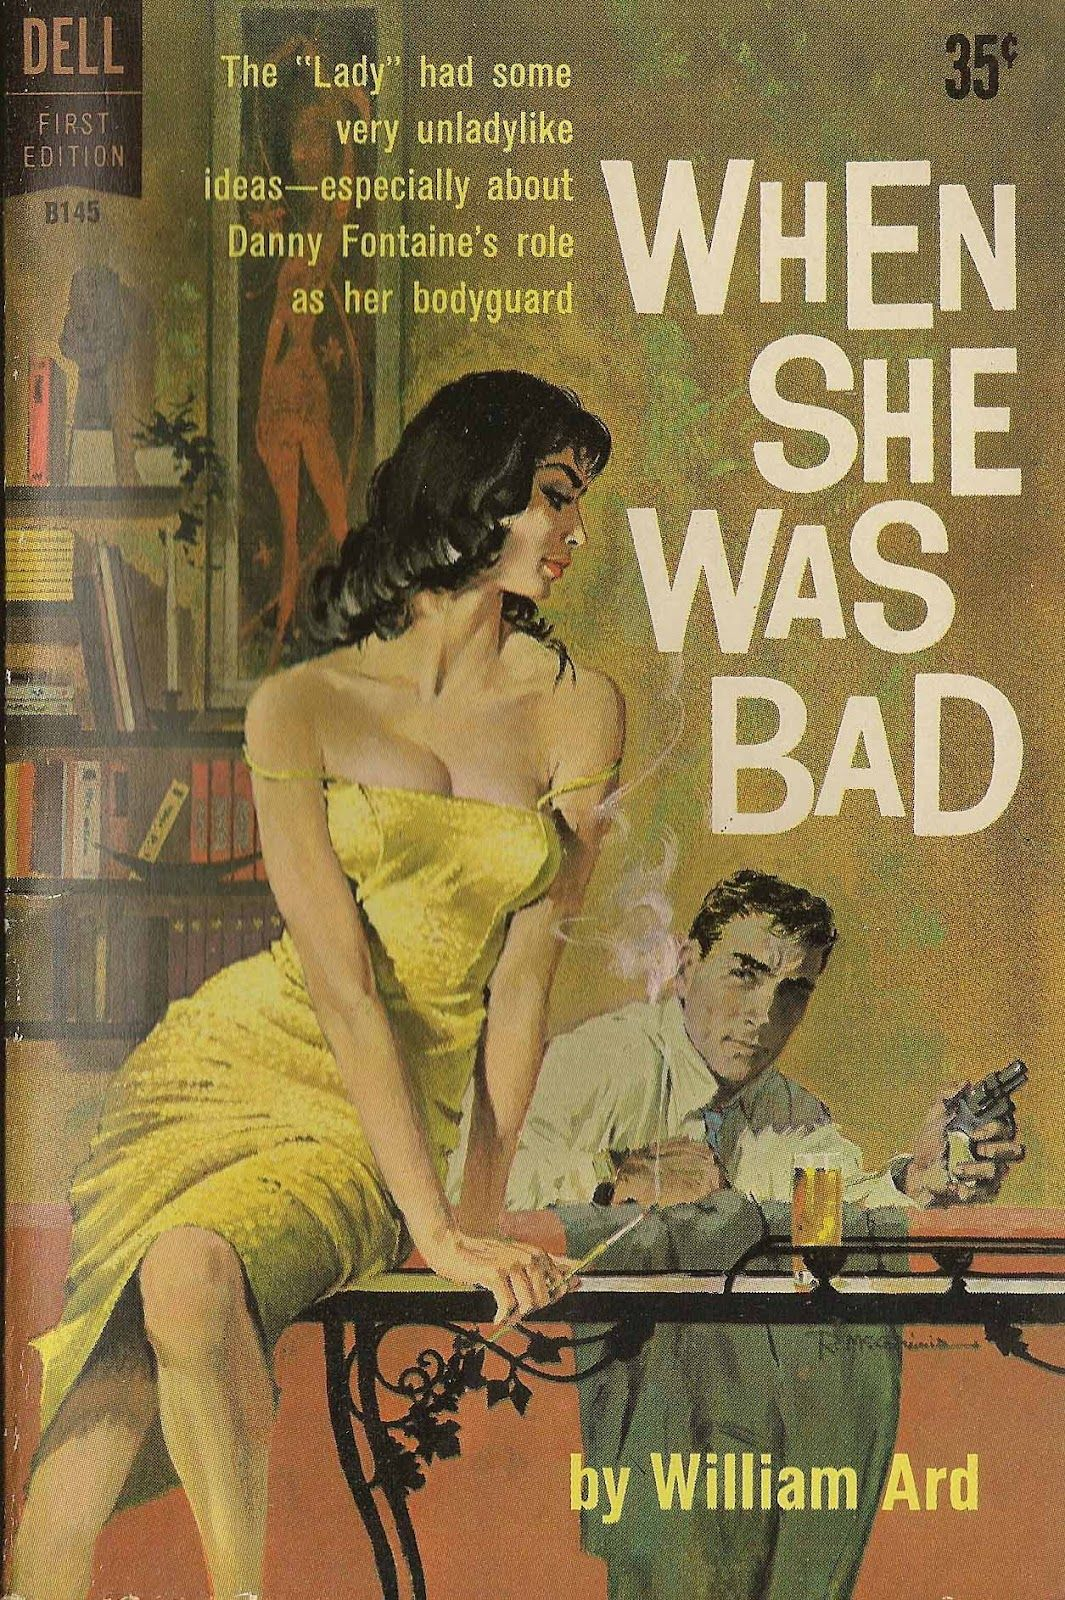 Robert McGinnis 67 Best Book Covers, Illustrations And Movie Posters From A Pulp Icon 3